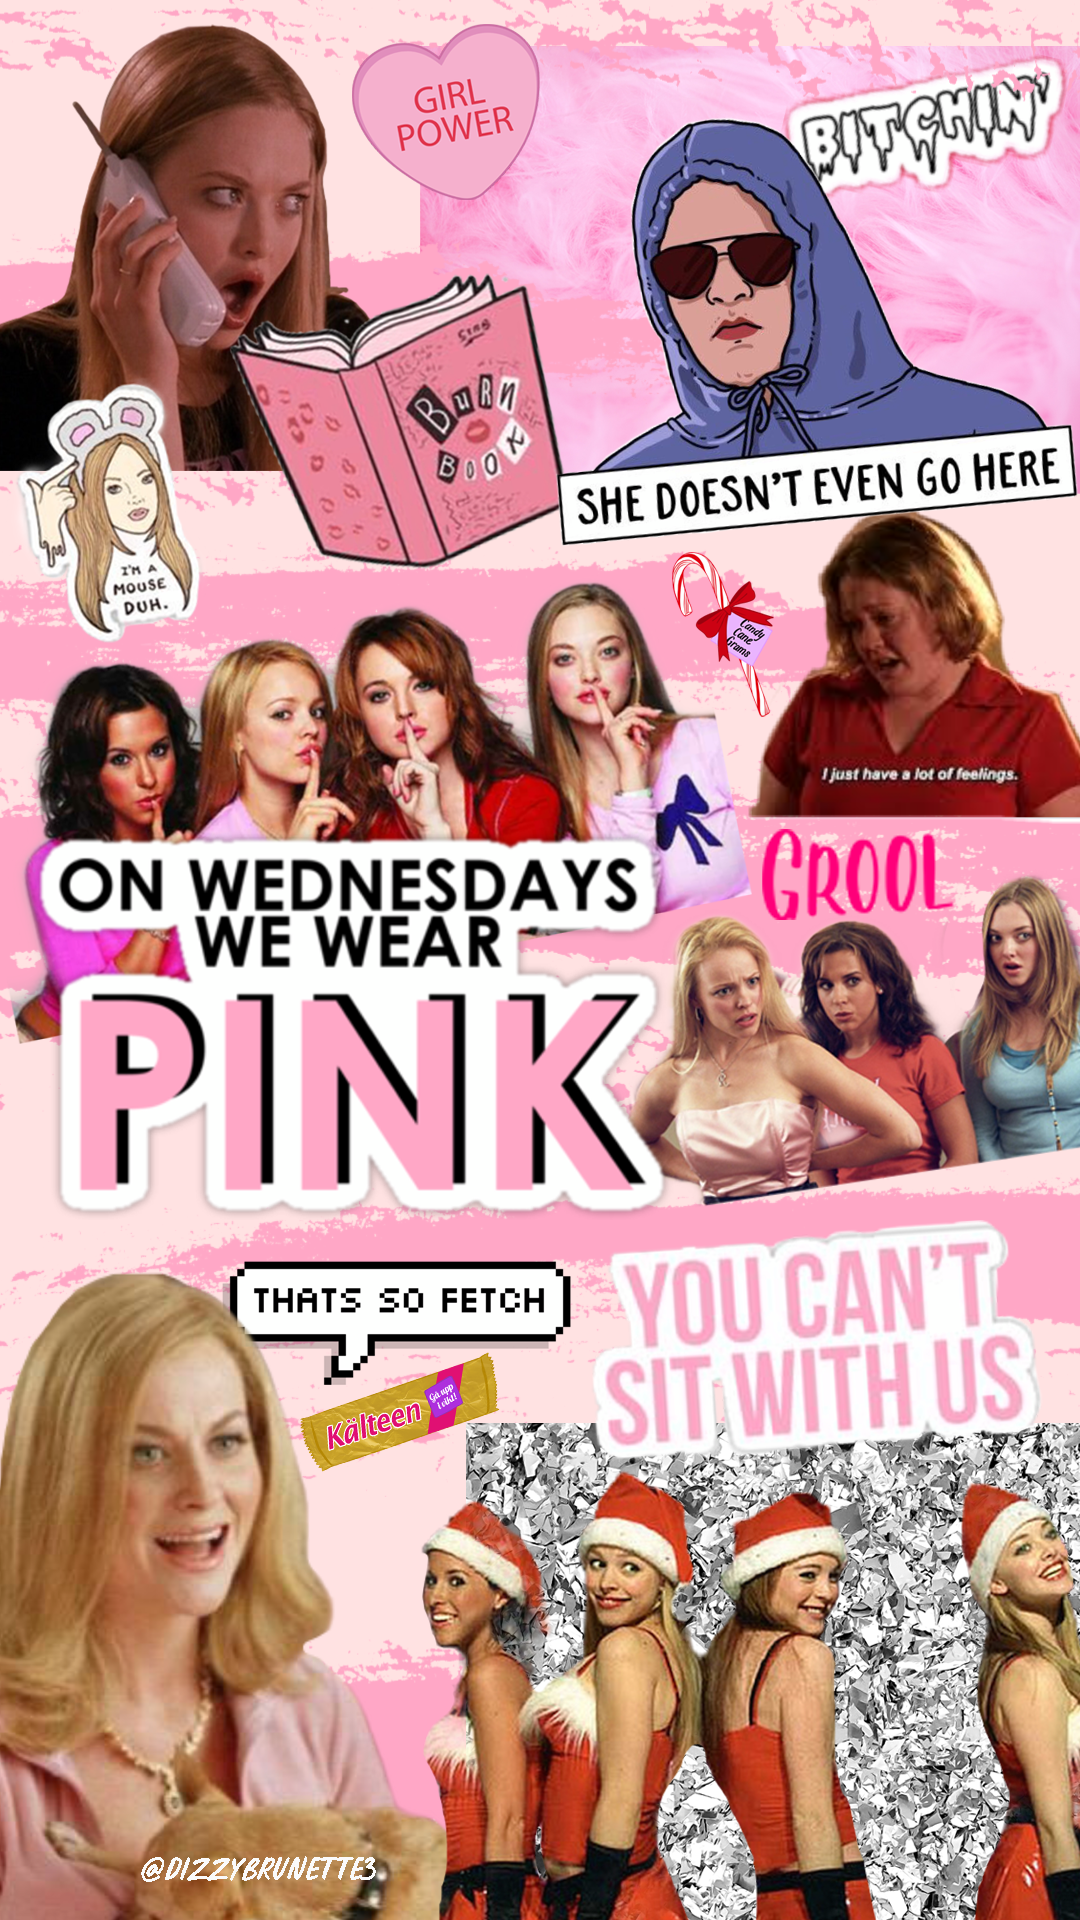 Free Mean Girls Wallpapers for Mean Girls Day - Corrie Bromfield